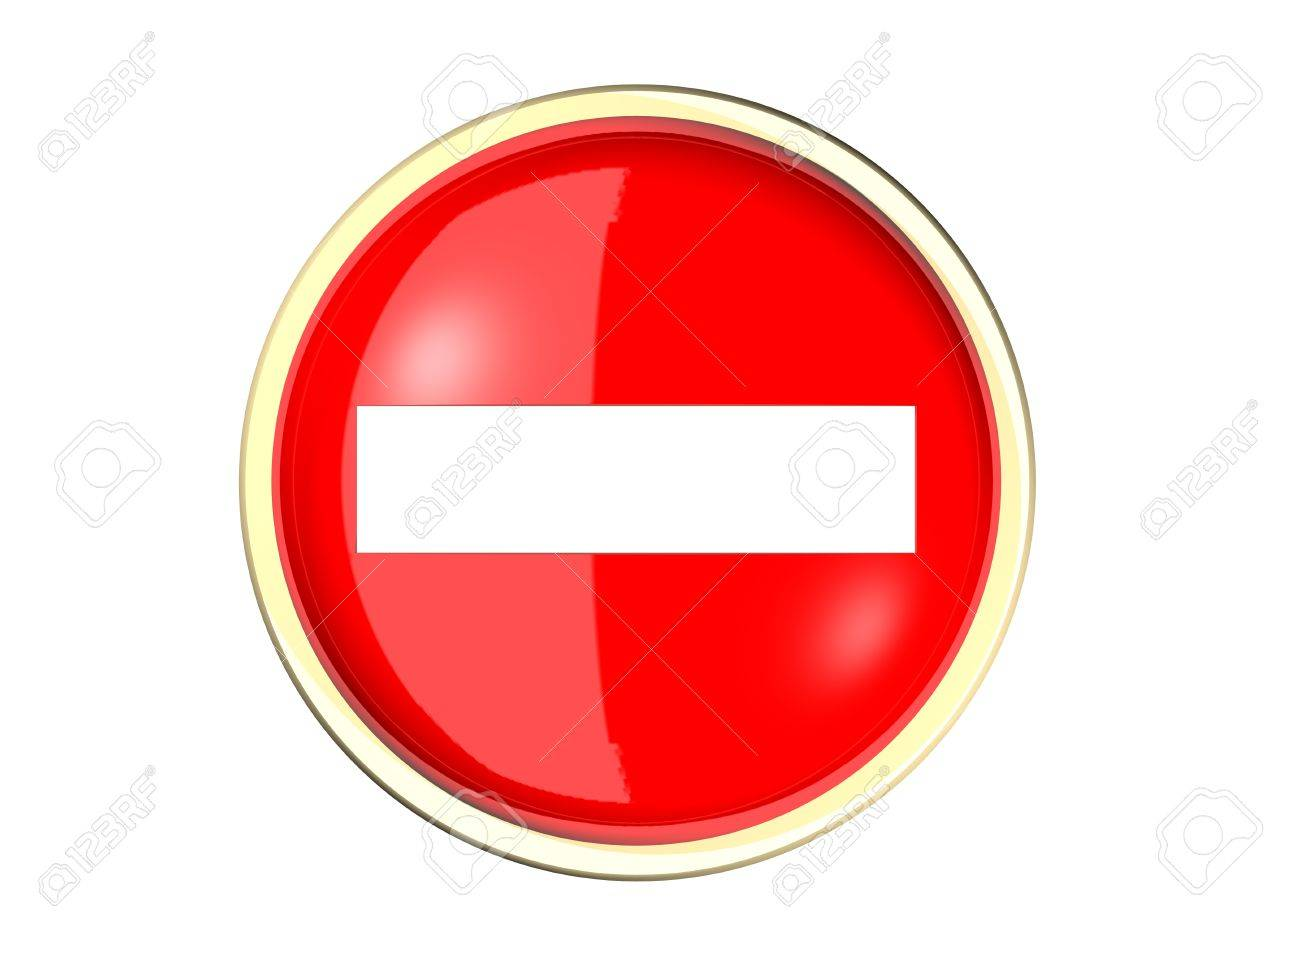 no entry sign Stock Photo - 10515973